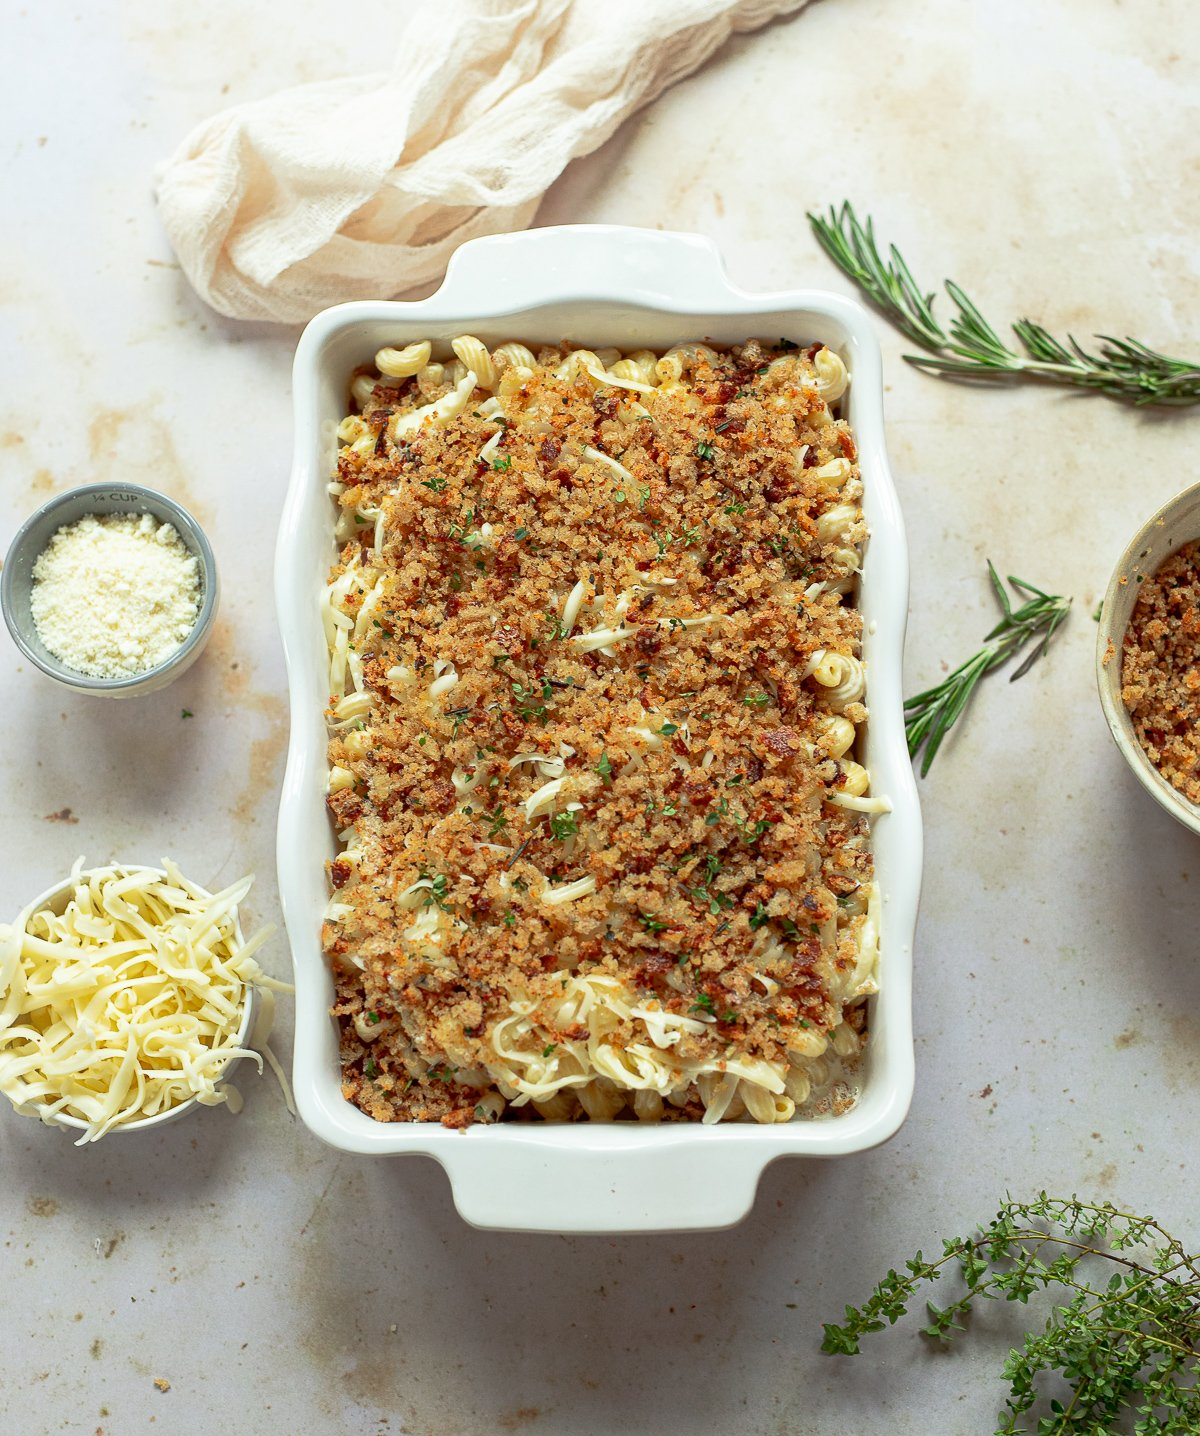 Image showing a white casserole dish filled with curly cavatappi pasta in a white creamy cheese sauce topped with toasted herbed breadcrumbs.